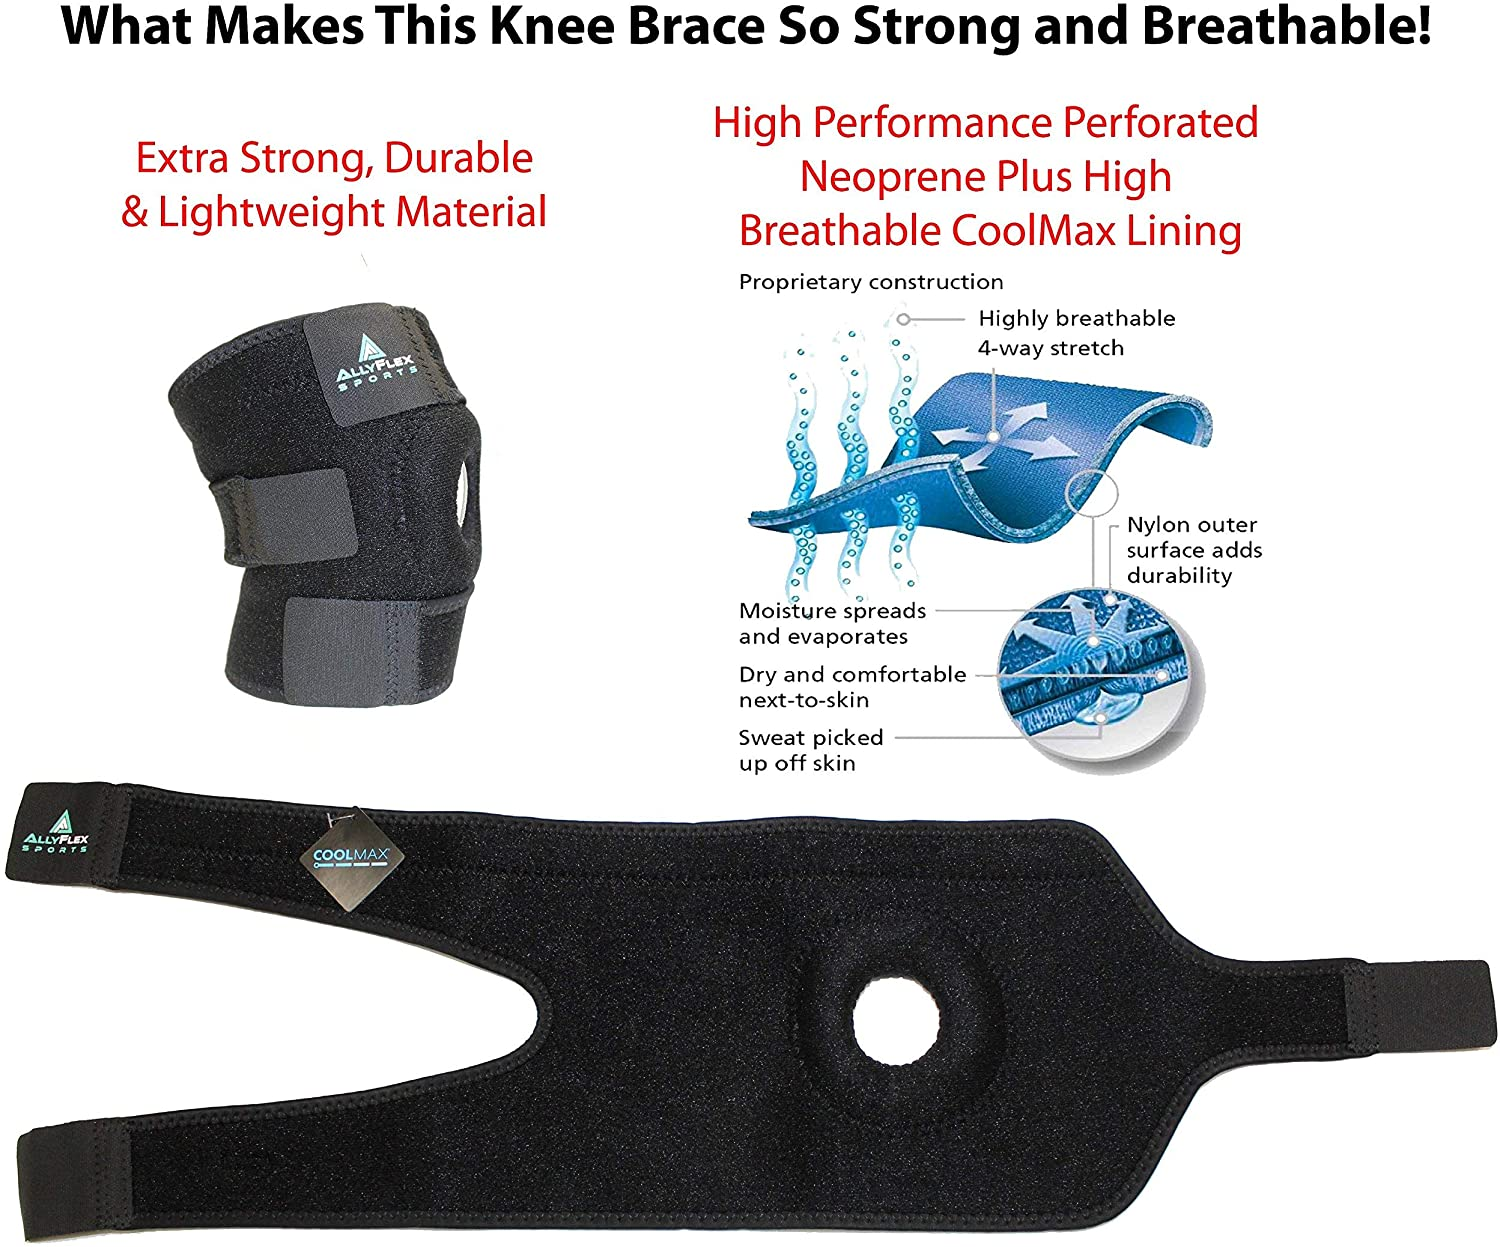 AllyFlex Sports® Knee Brace Open Patella Stabilizer | Cooling & Moisture-Wicking, Breathable Materials for Comfort | NeoAllySports.com